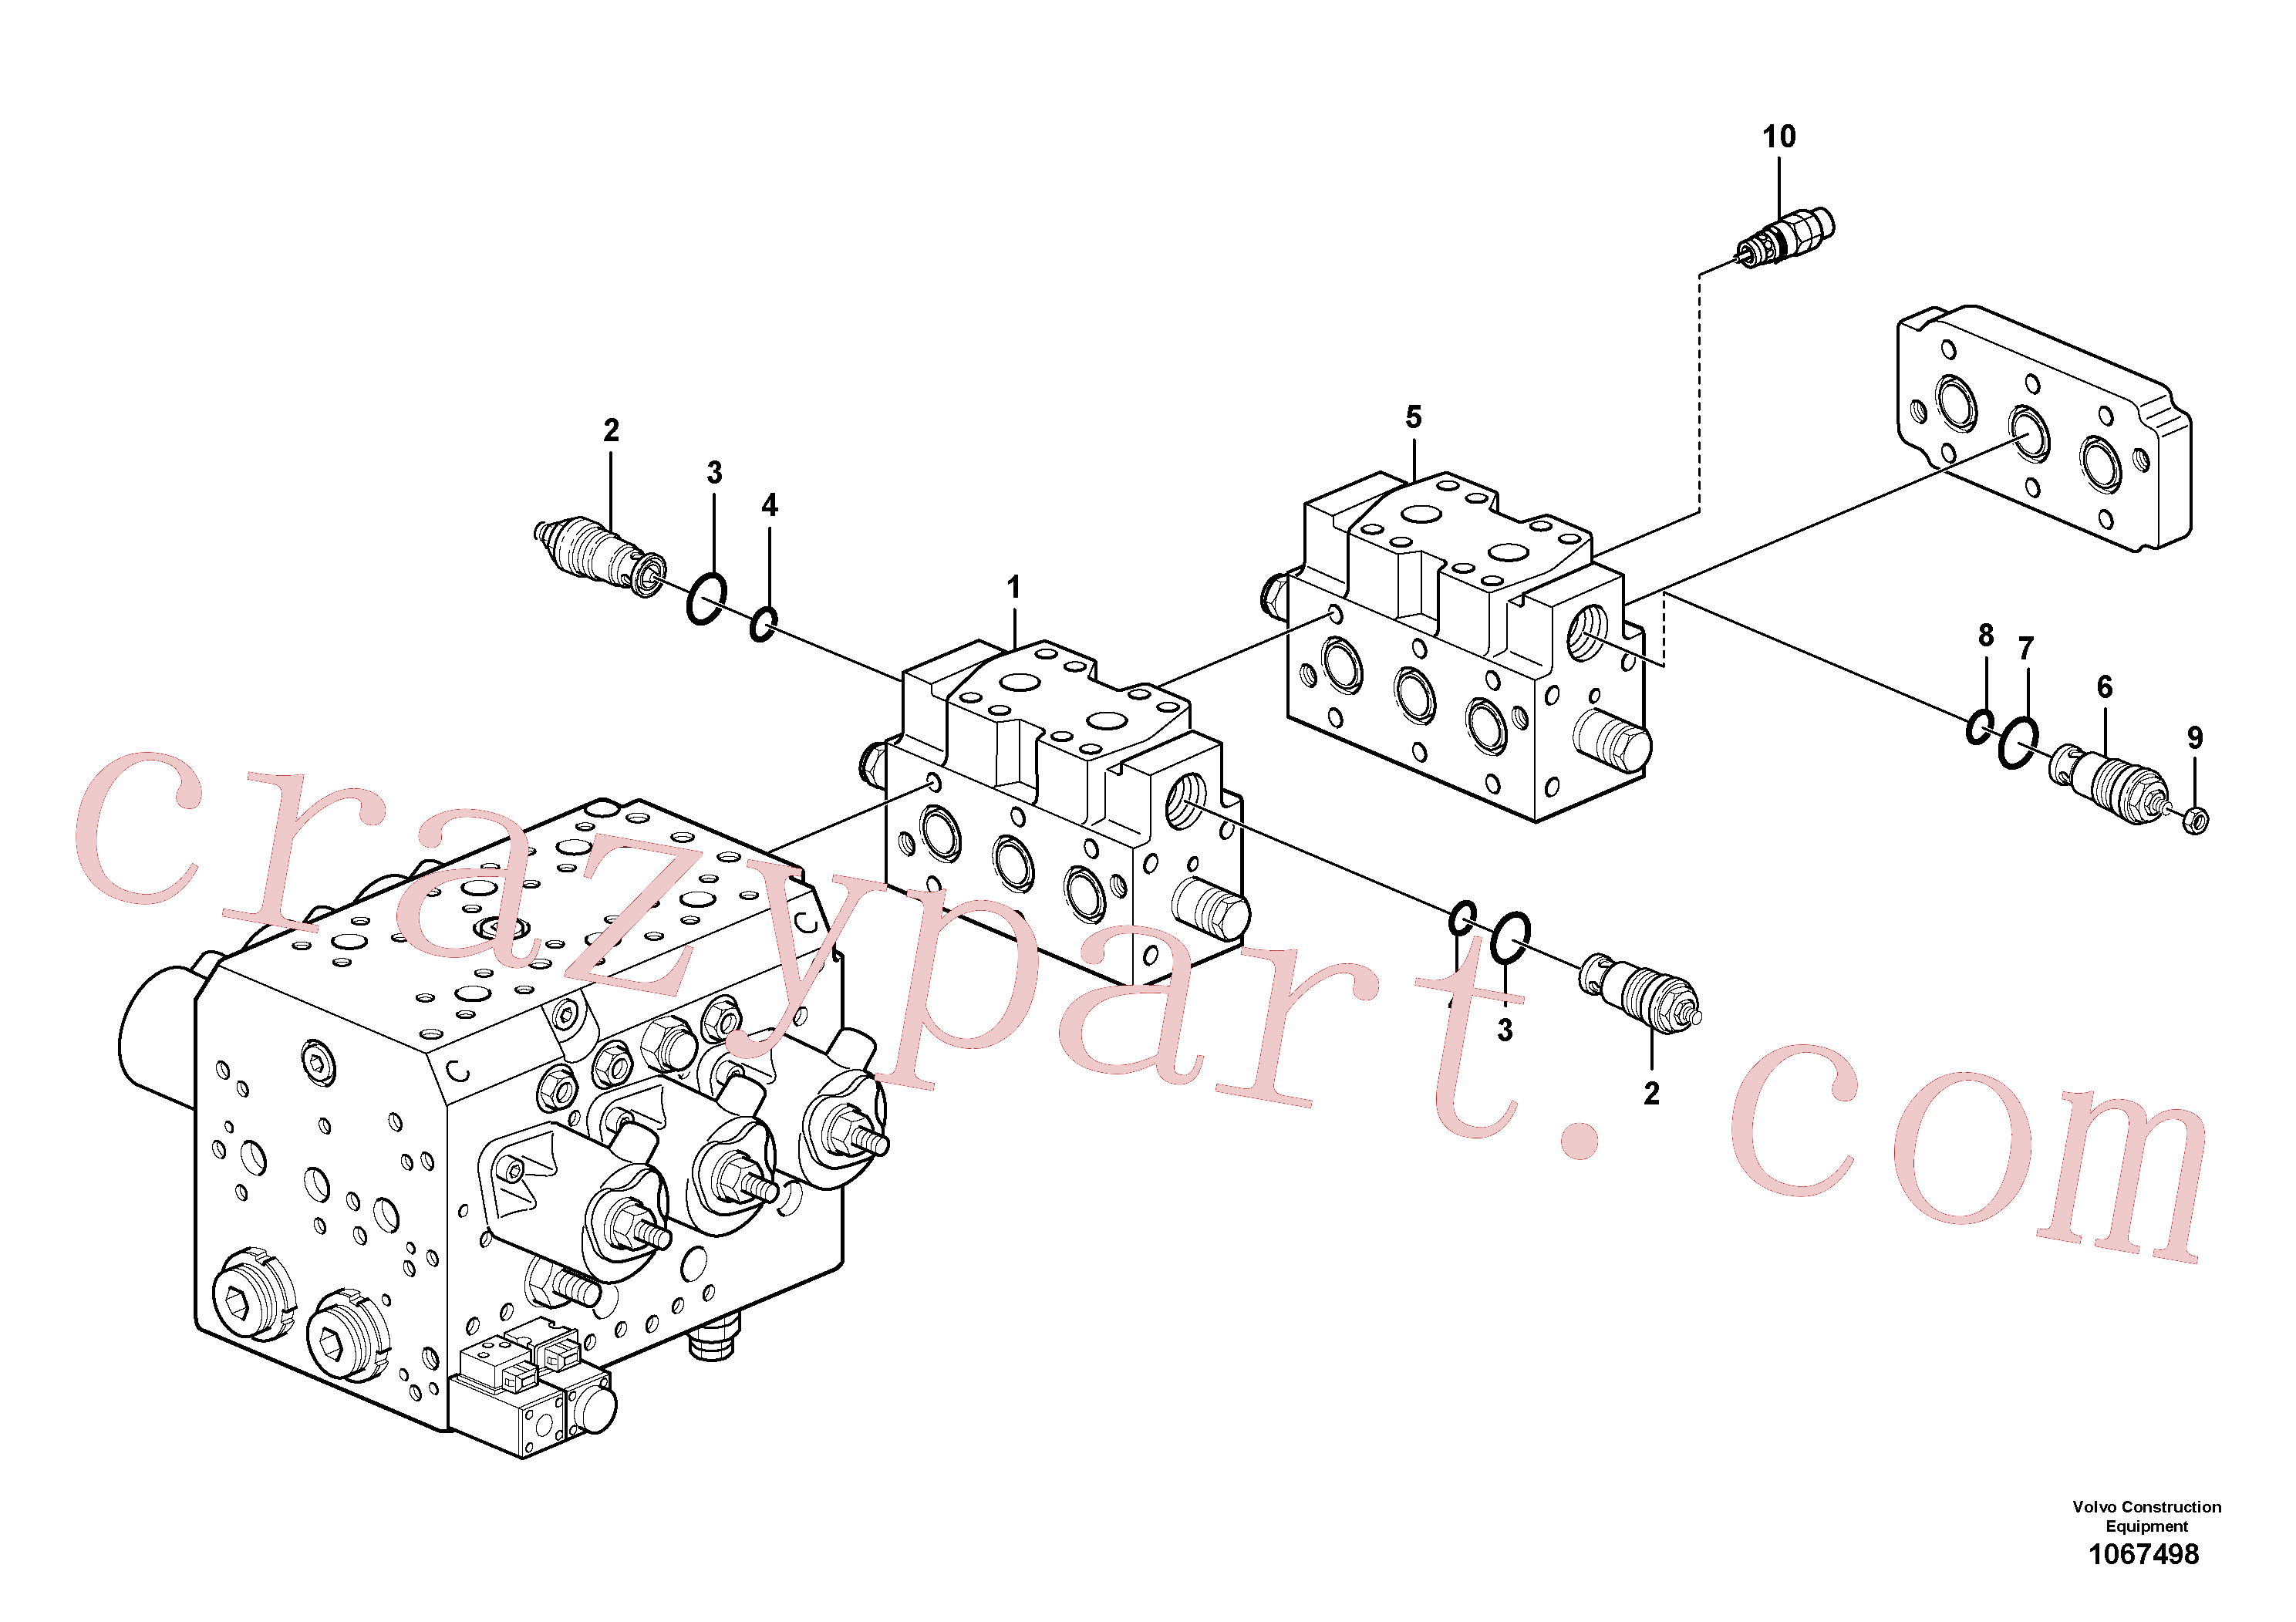 VOE17260229 for Volvo Valve(1067498 assembly)